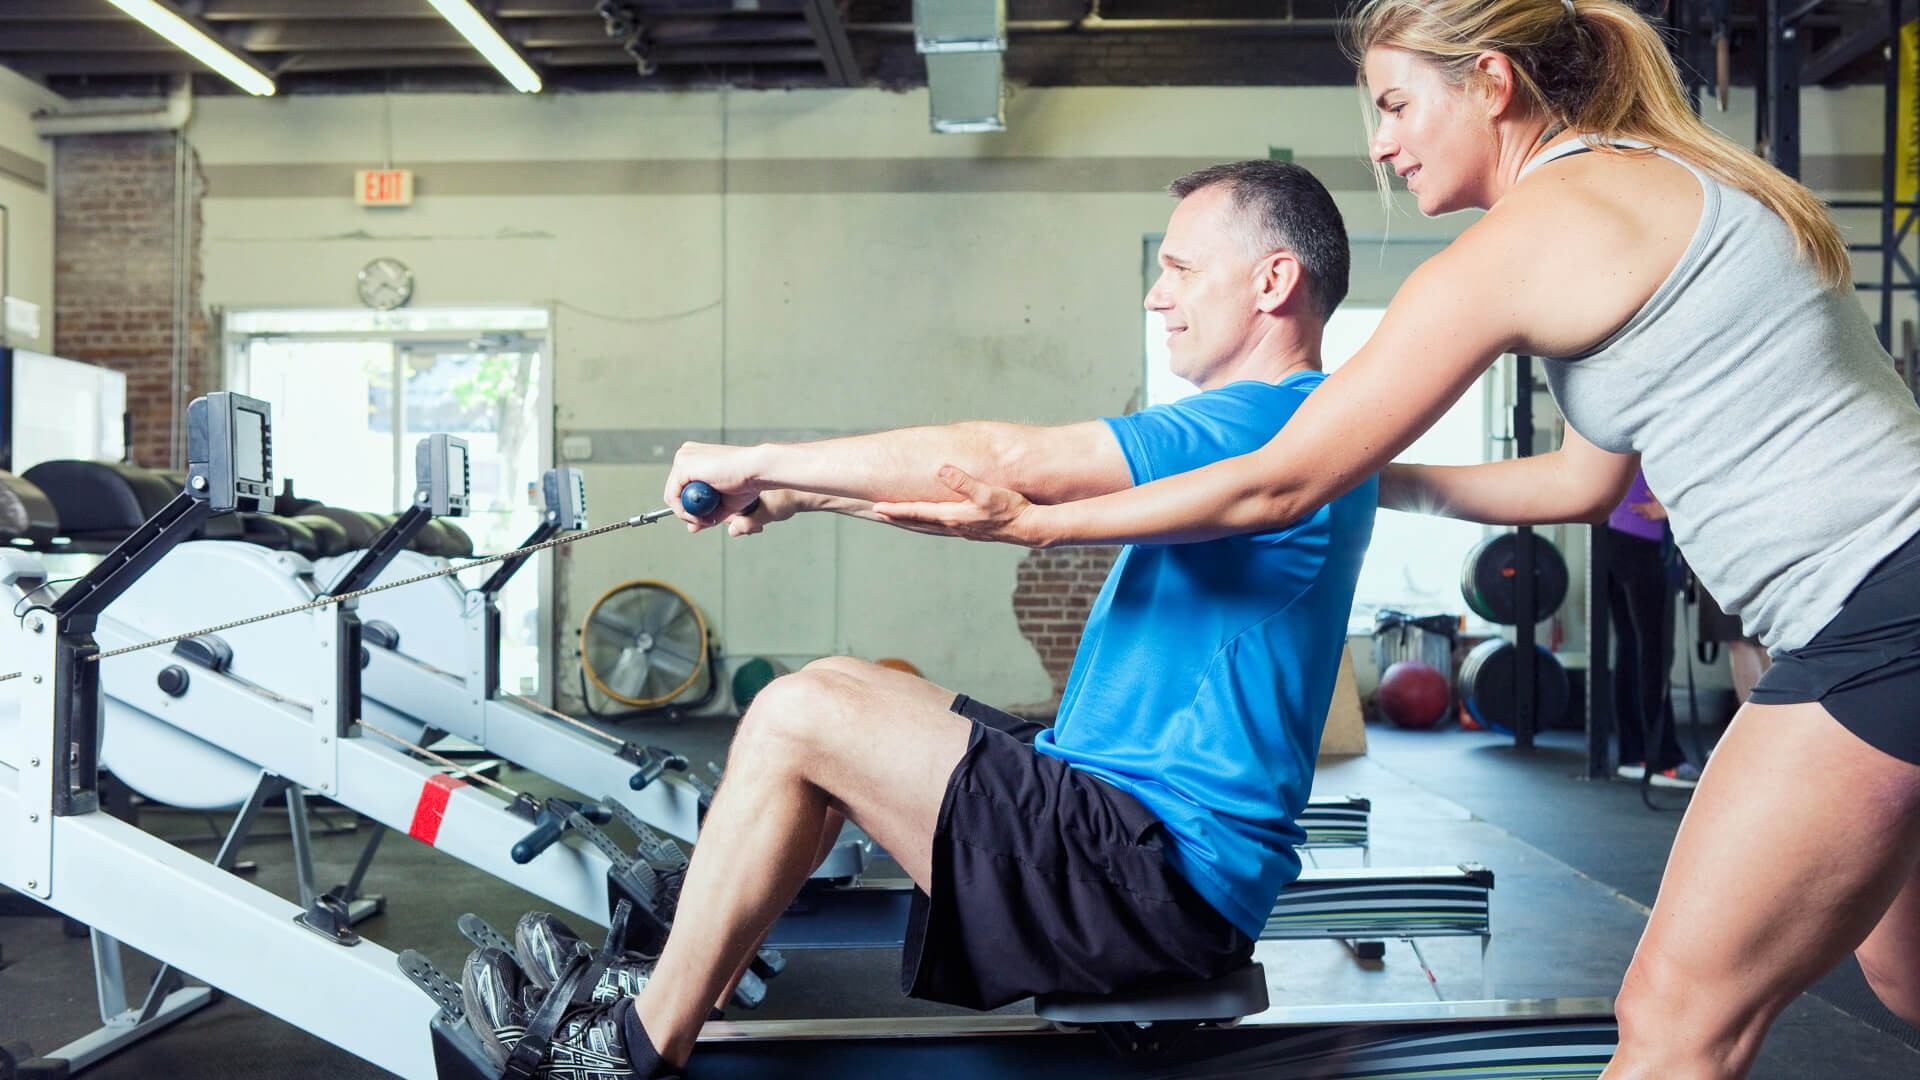 Personal trainer working with her client at a gym.